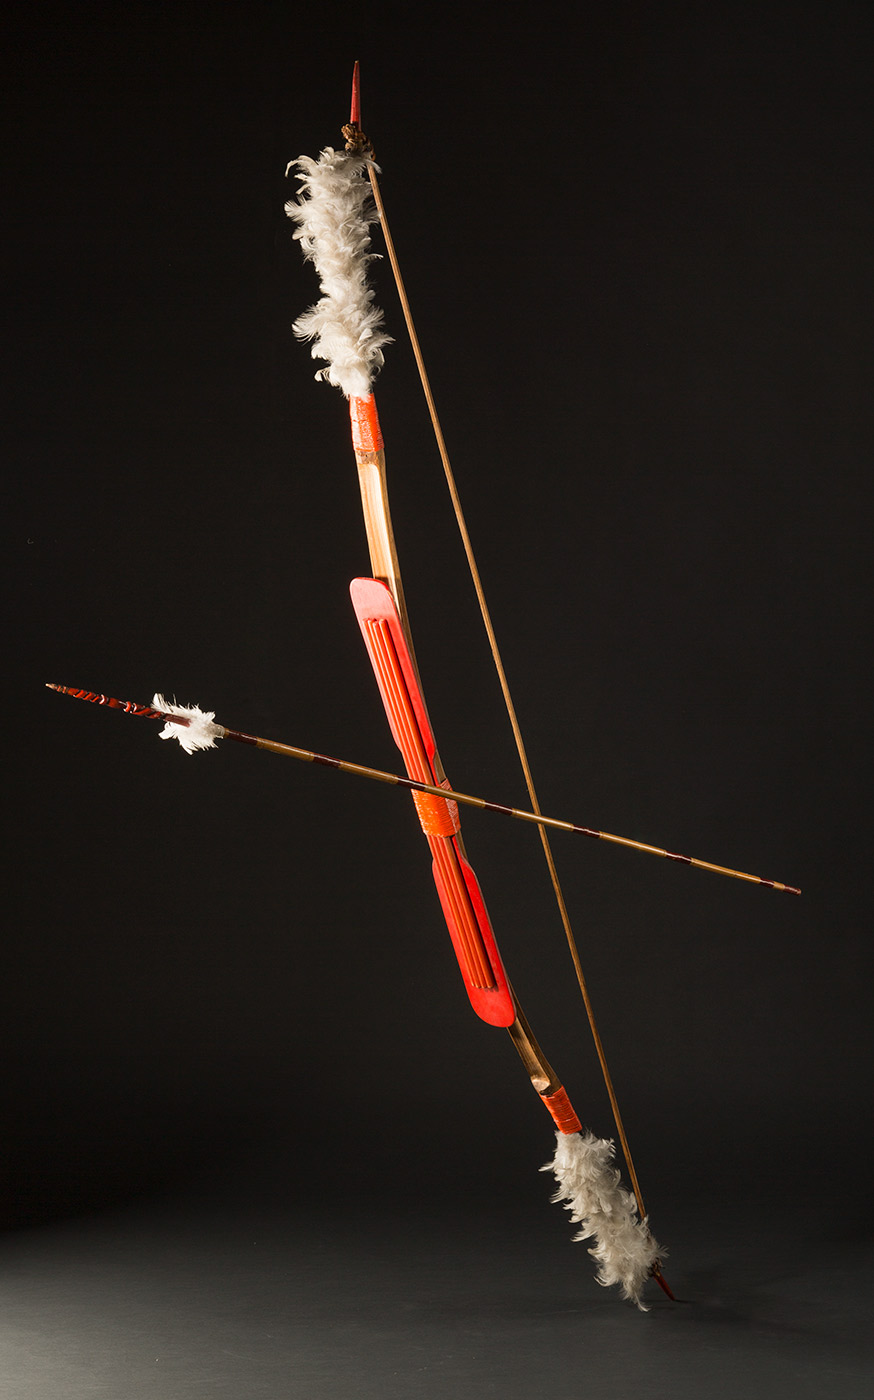 A bow and arrow set. The bow features a piece of wood with four cylindrical poles attached to the bowed wood and painted red. There are grey feathers attached to the ends bound with string also painted red. There is a thin piece of wood bound to the ends of the bowed wood with natural fibres. The arrow is attached to the bow with wire and features read bands the length of the shaft and red pigmented tip with carved twisted design and grey feathers attached. - click to view larger image